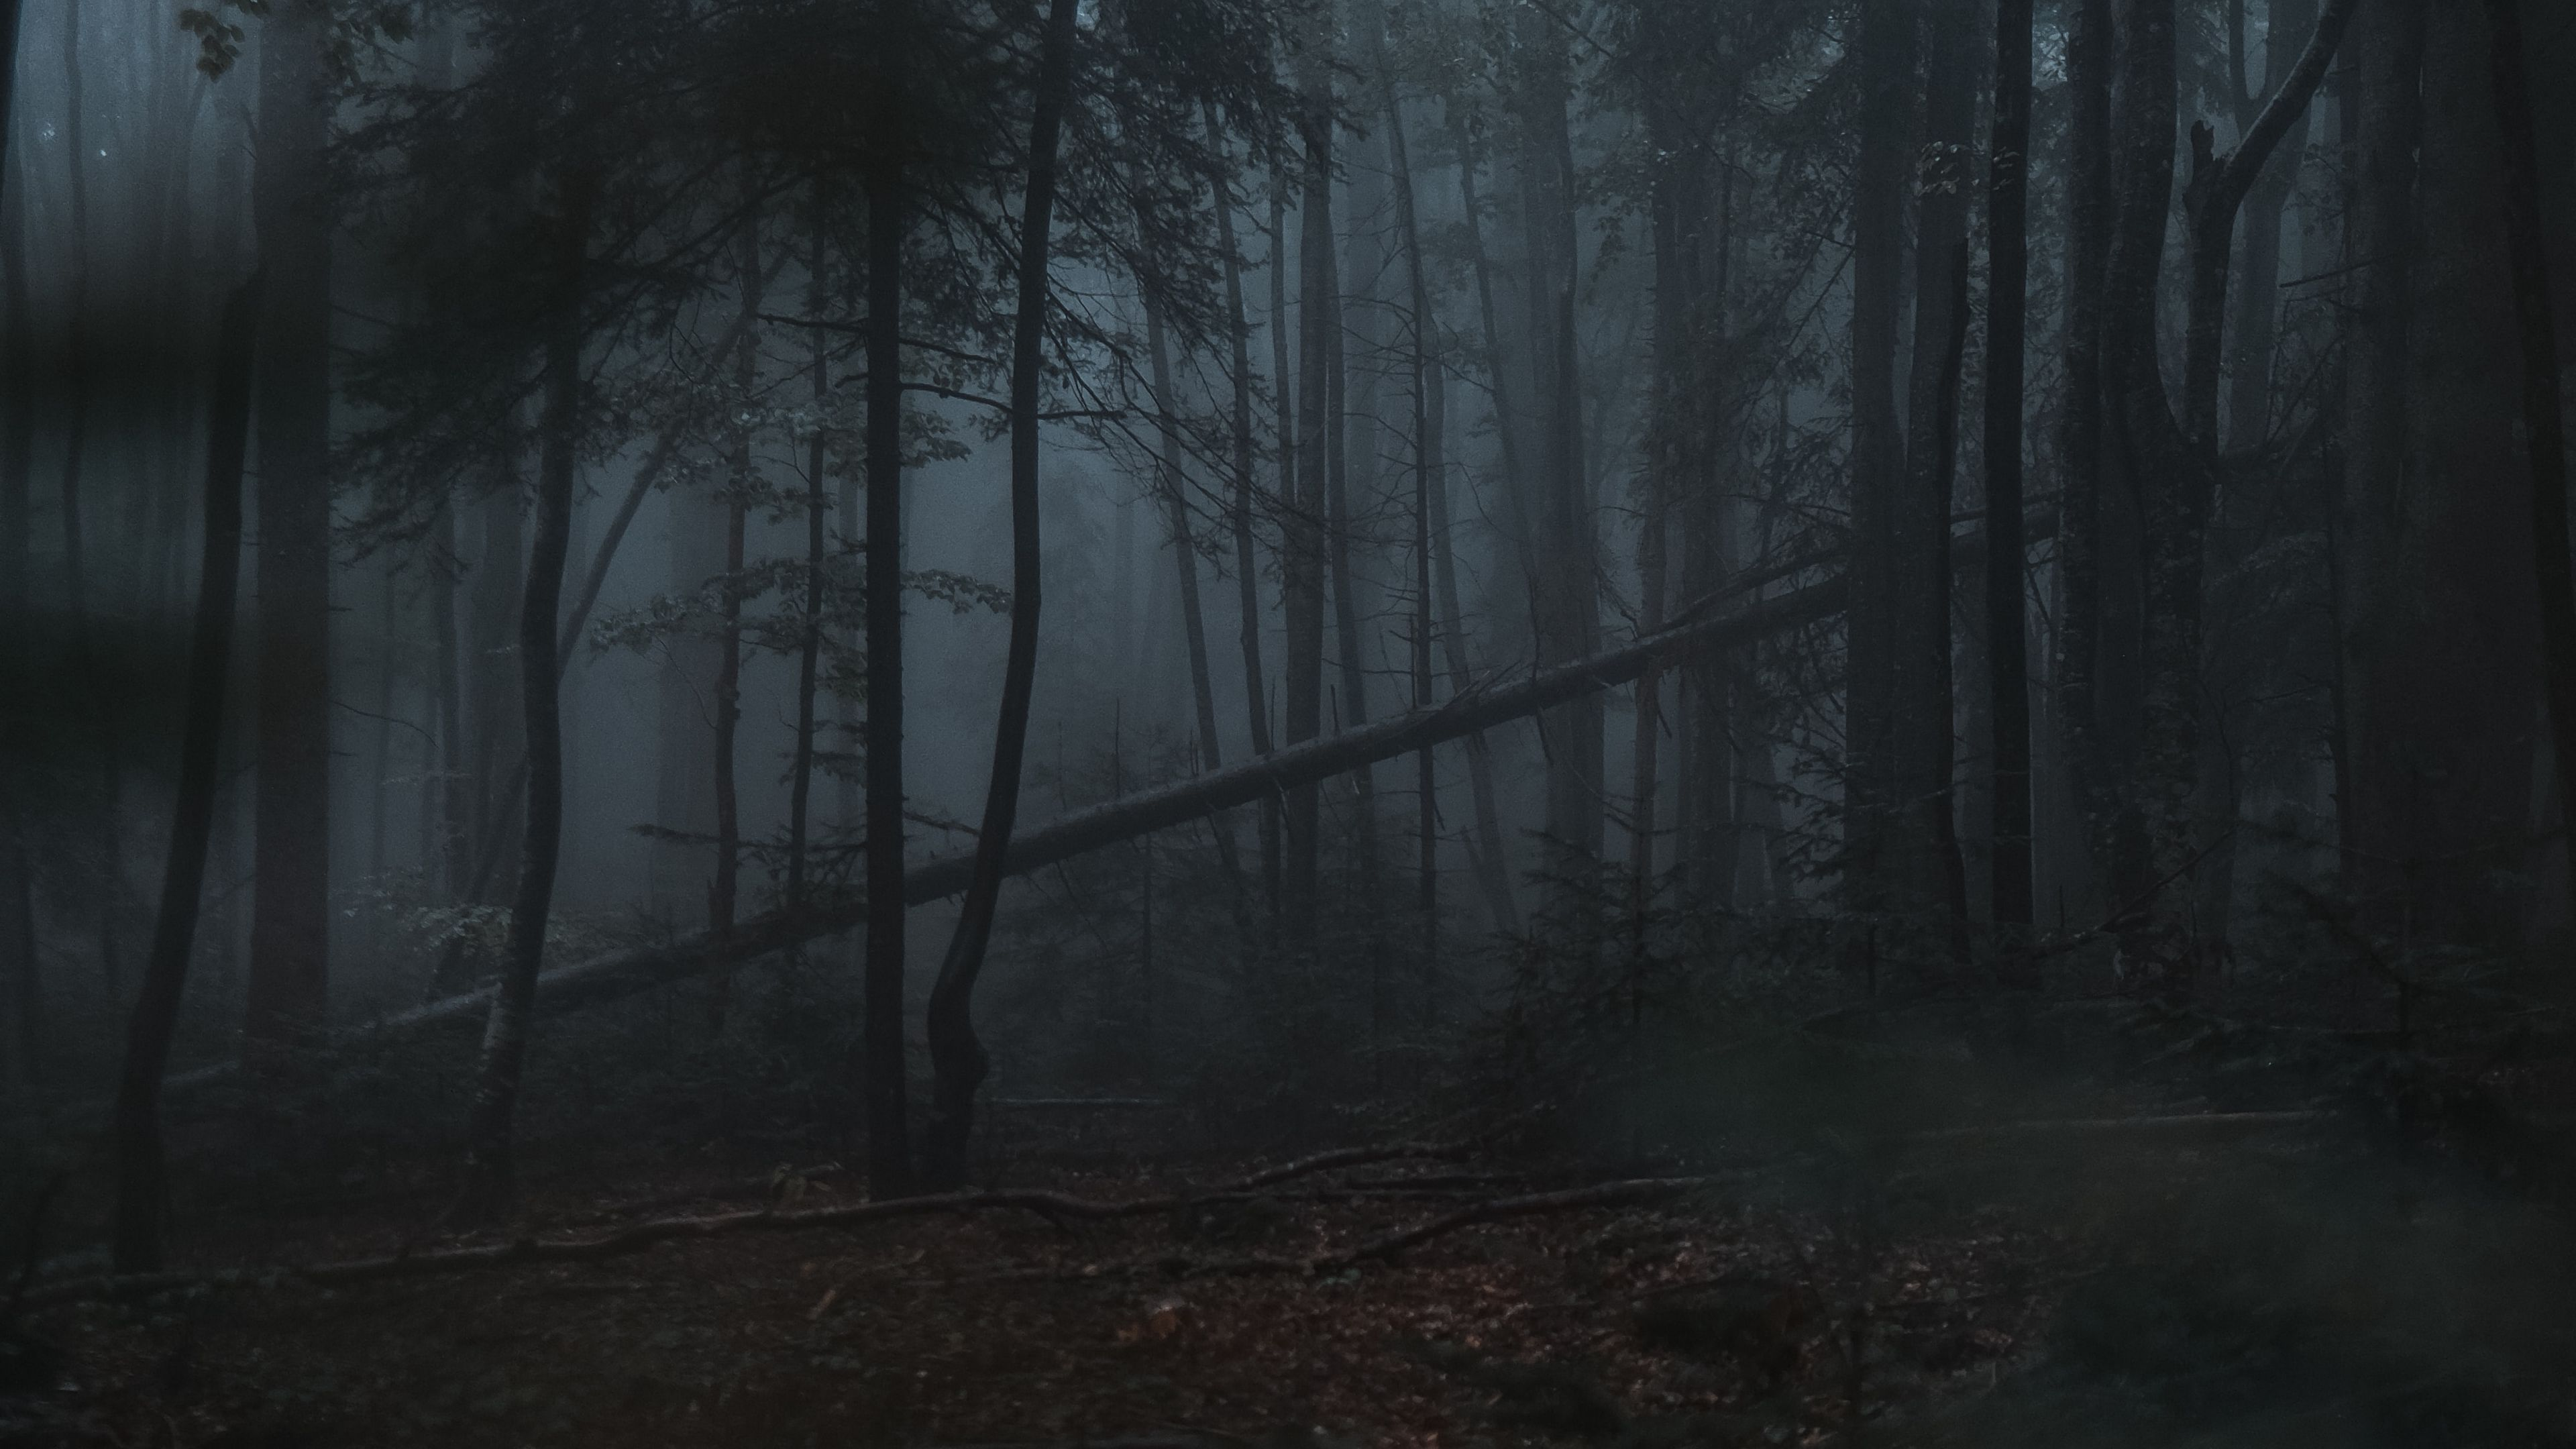 Download wallpaper 3840x2160 forest, fog, trees, gloomy ...